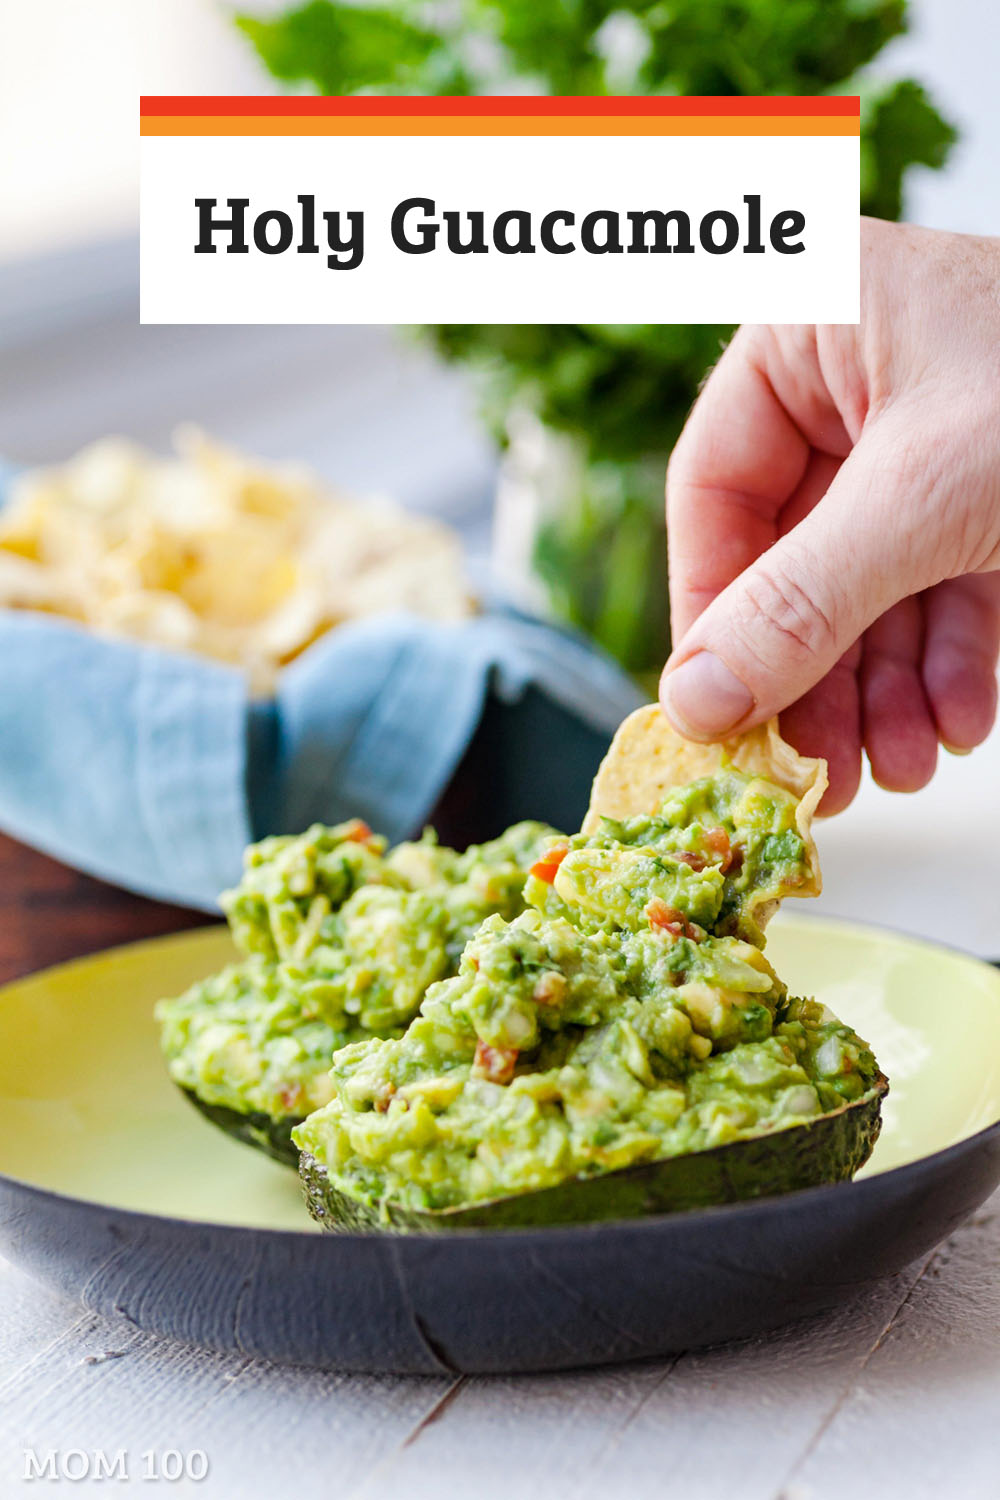 This quick and easy guacamole recipe is of the most-requested appetizers for my kids (and a must on game day).